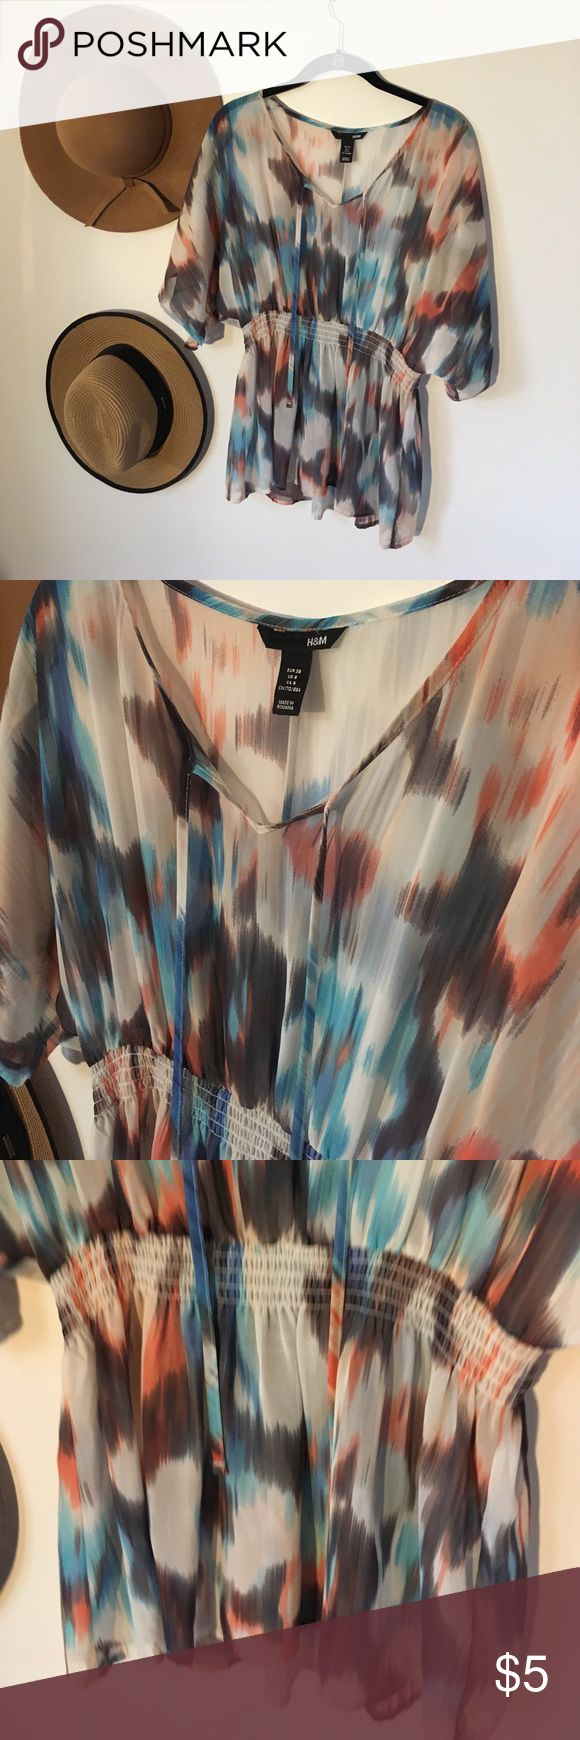 H&M whimsical top. Waist-defining silk top. Perfect for an artsy whimsical look. Looks stylish with a turtle neck underneath for fall/winter and a jean skirt for summer. H&M Tops Blouses